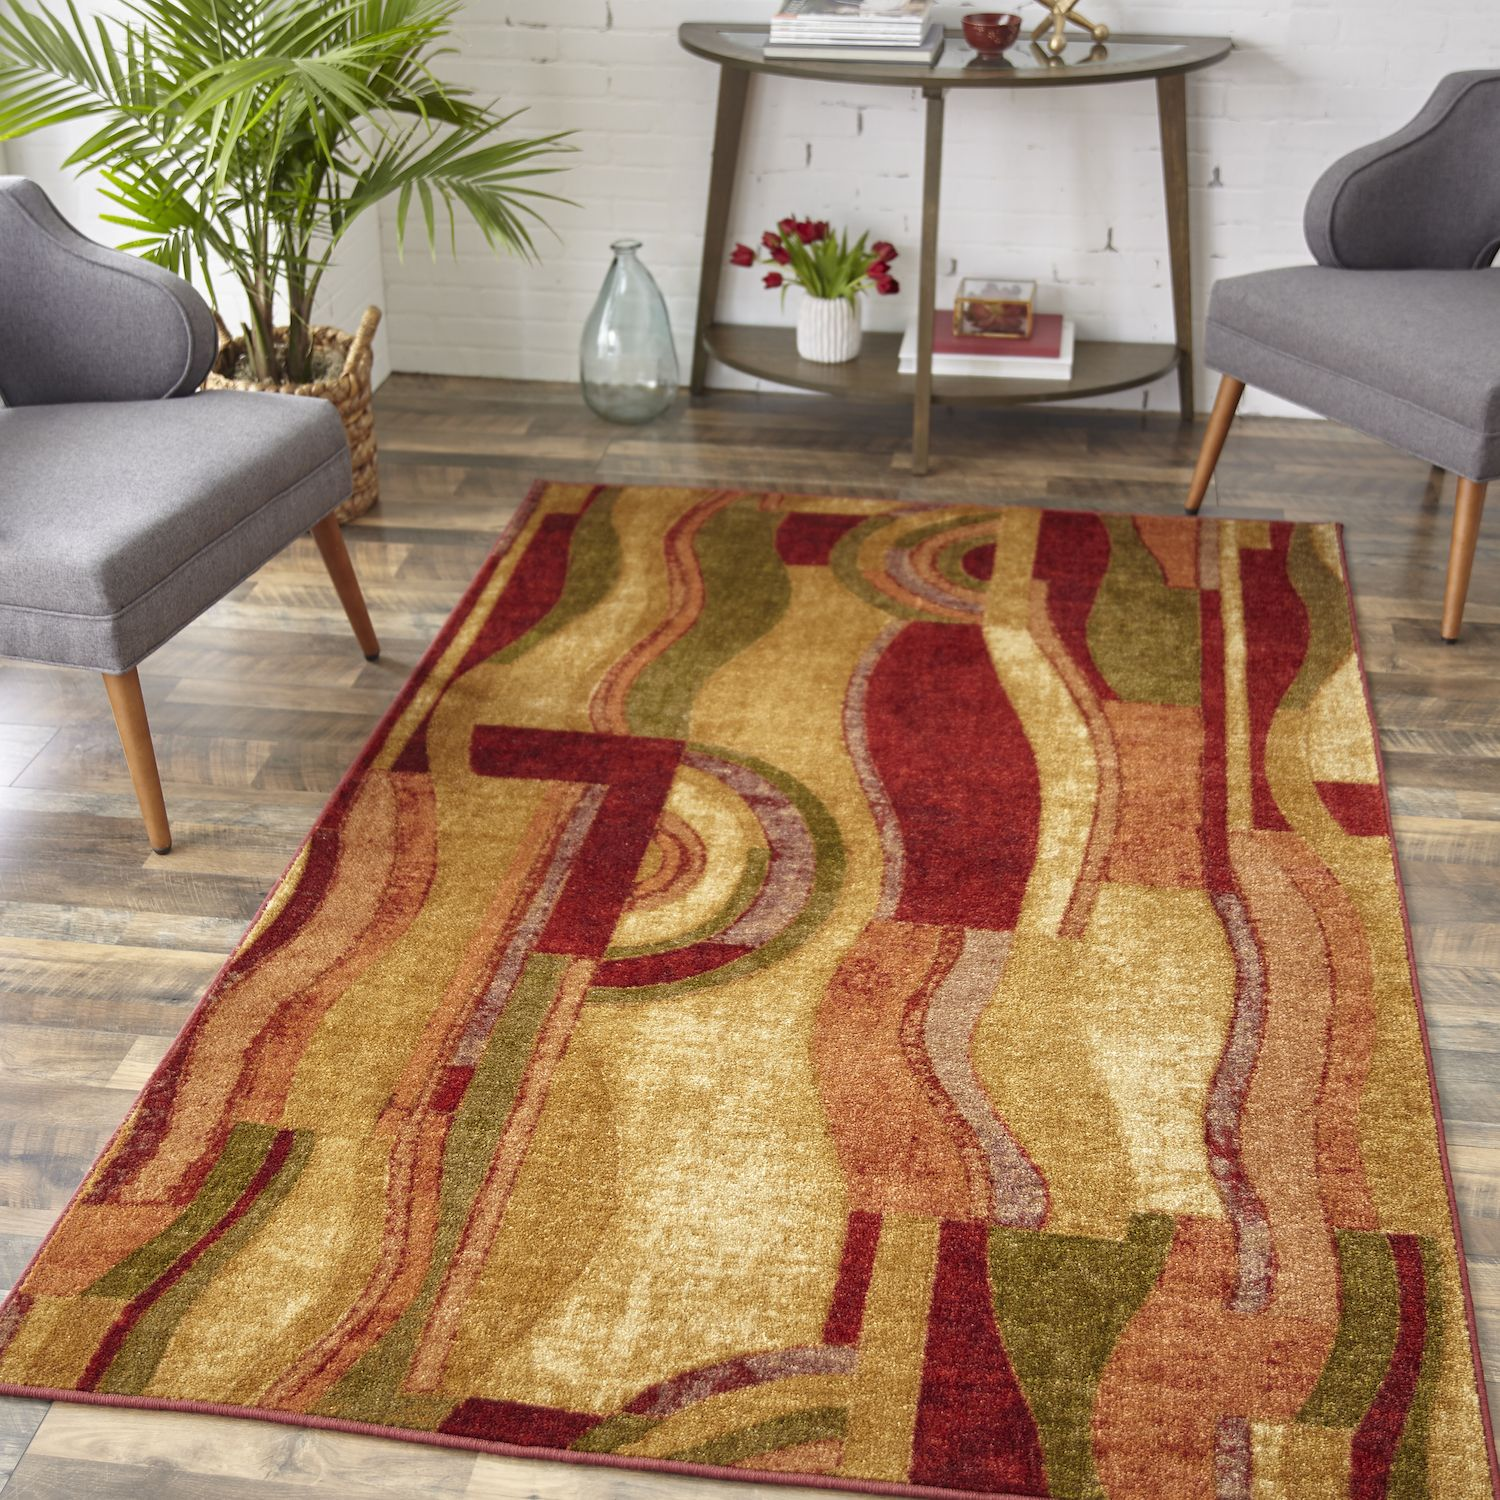 Mohawk Home Runner Rugs, Home Decor | Kohl\'s